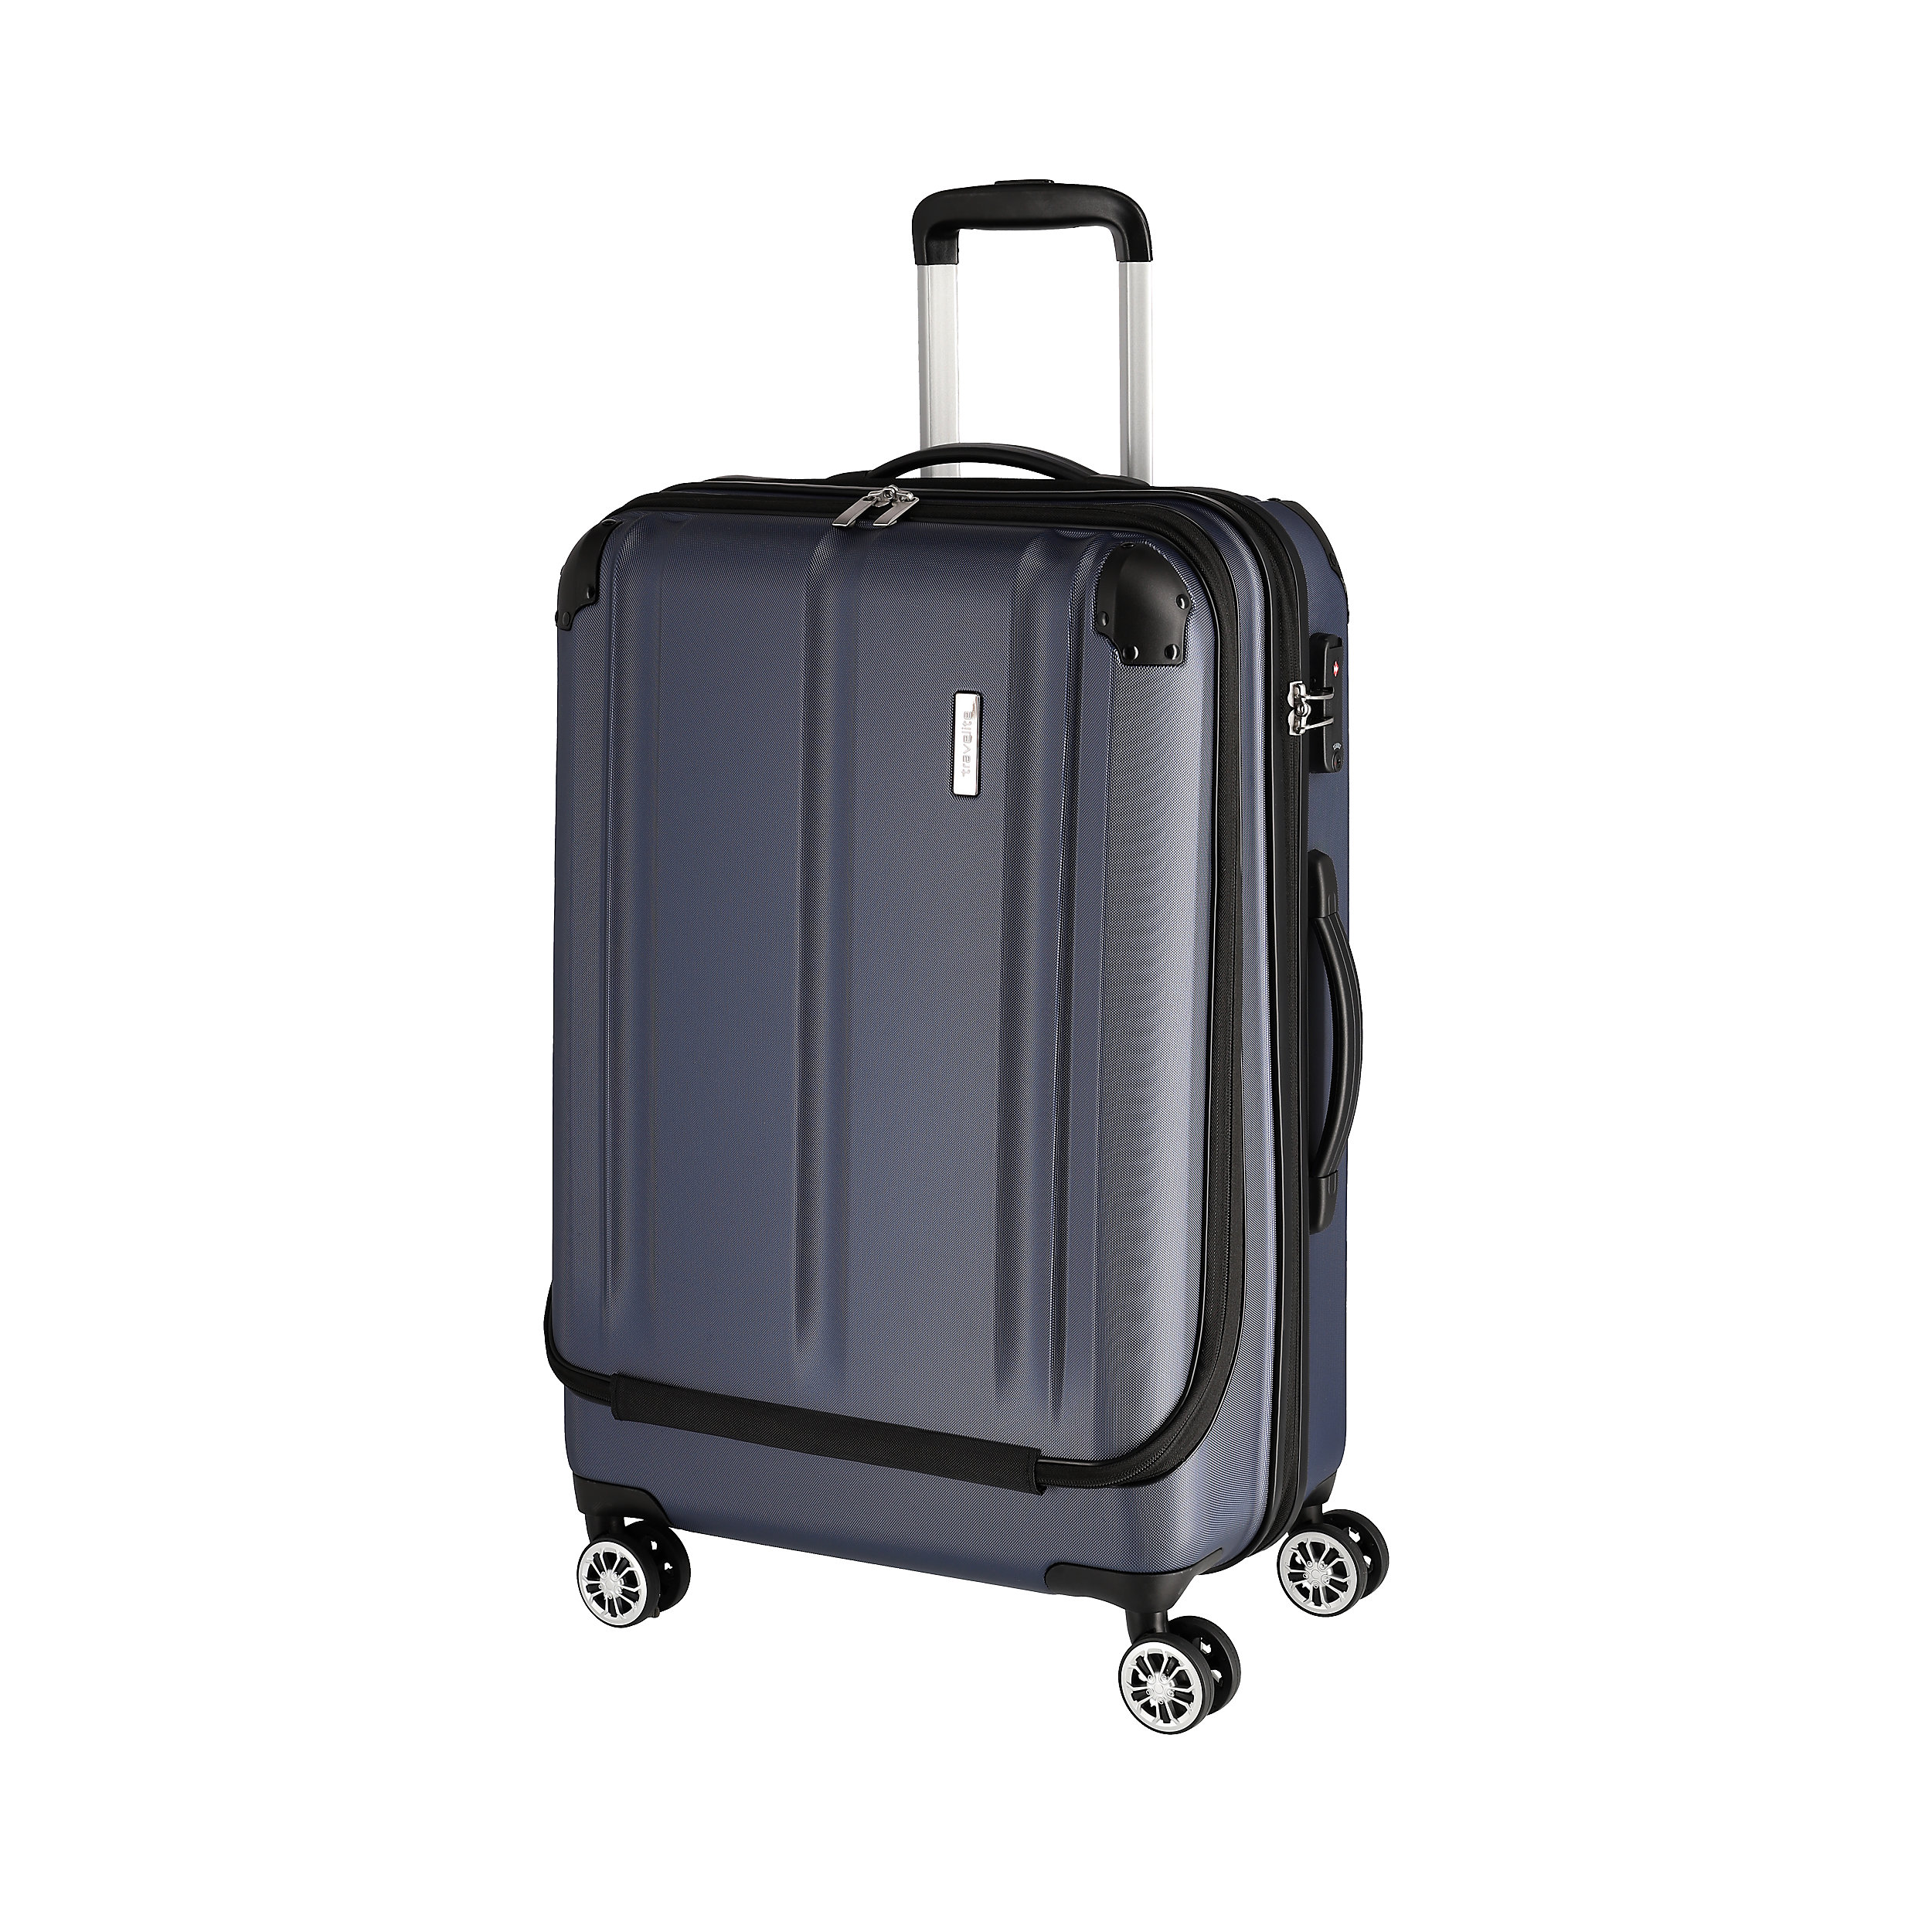 Suitcase with 4 wheels M 68 cm Business City 44 Liter